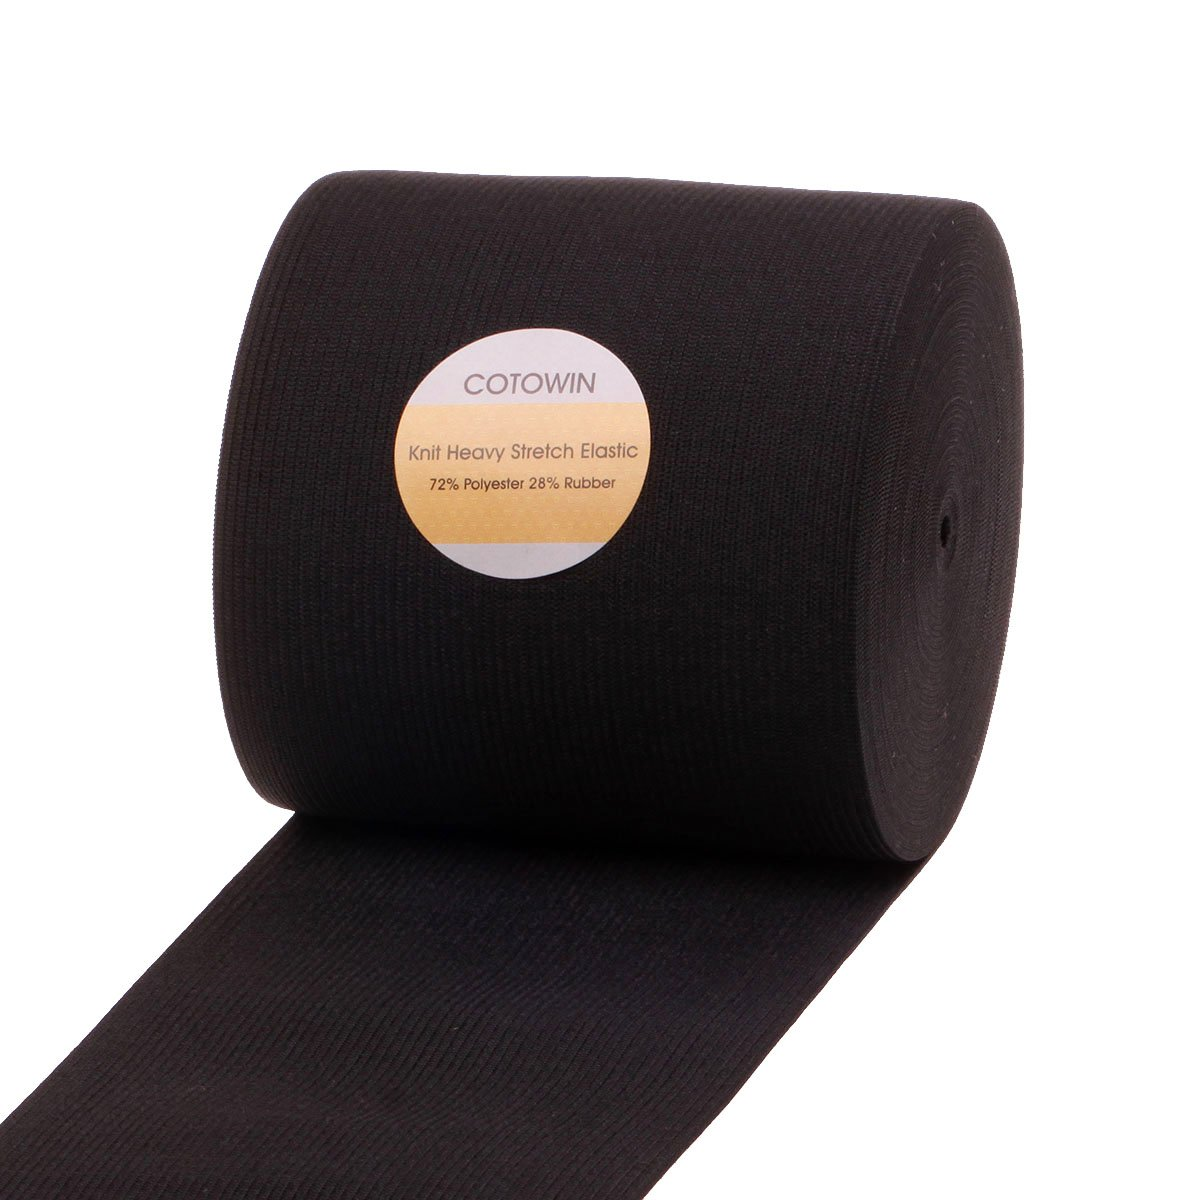 COTOWIN 4-inch Black Knit Heavy Stretch High Elasticity Elastic Band 10 Yards by COTOWIN